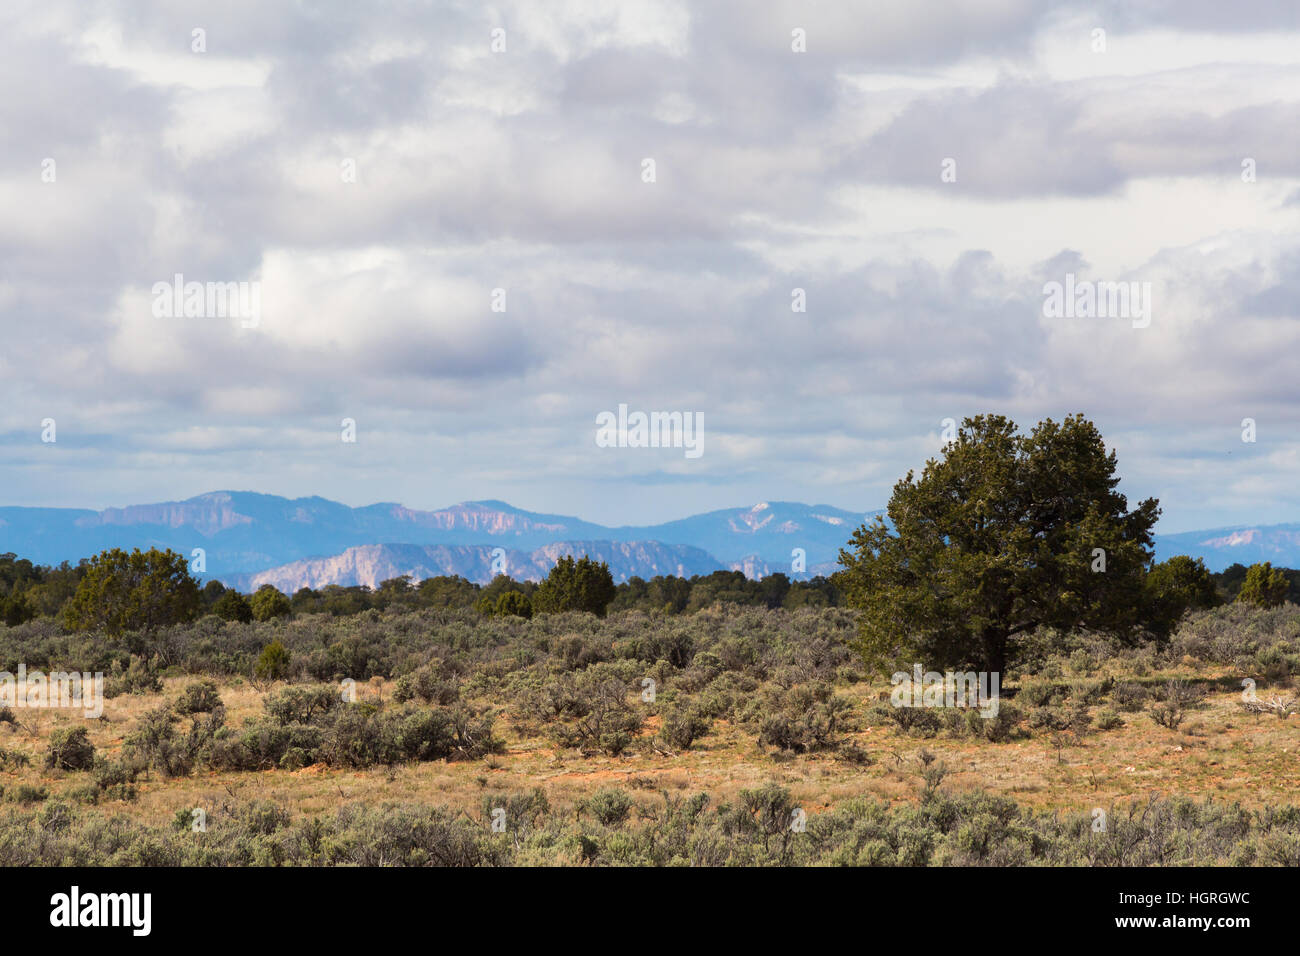 Sagebrush and juniper trees covering the open expanses of the northern Kaibab Plateau. Kaibab National Forest, Arizona - Stock Image